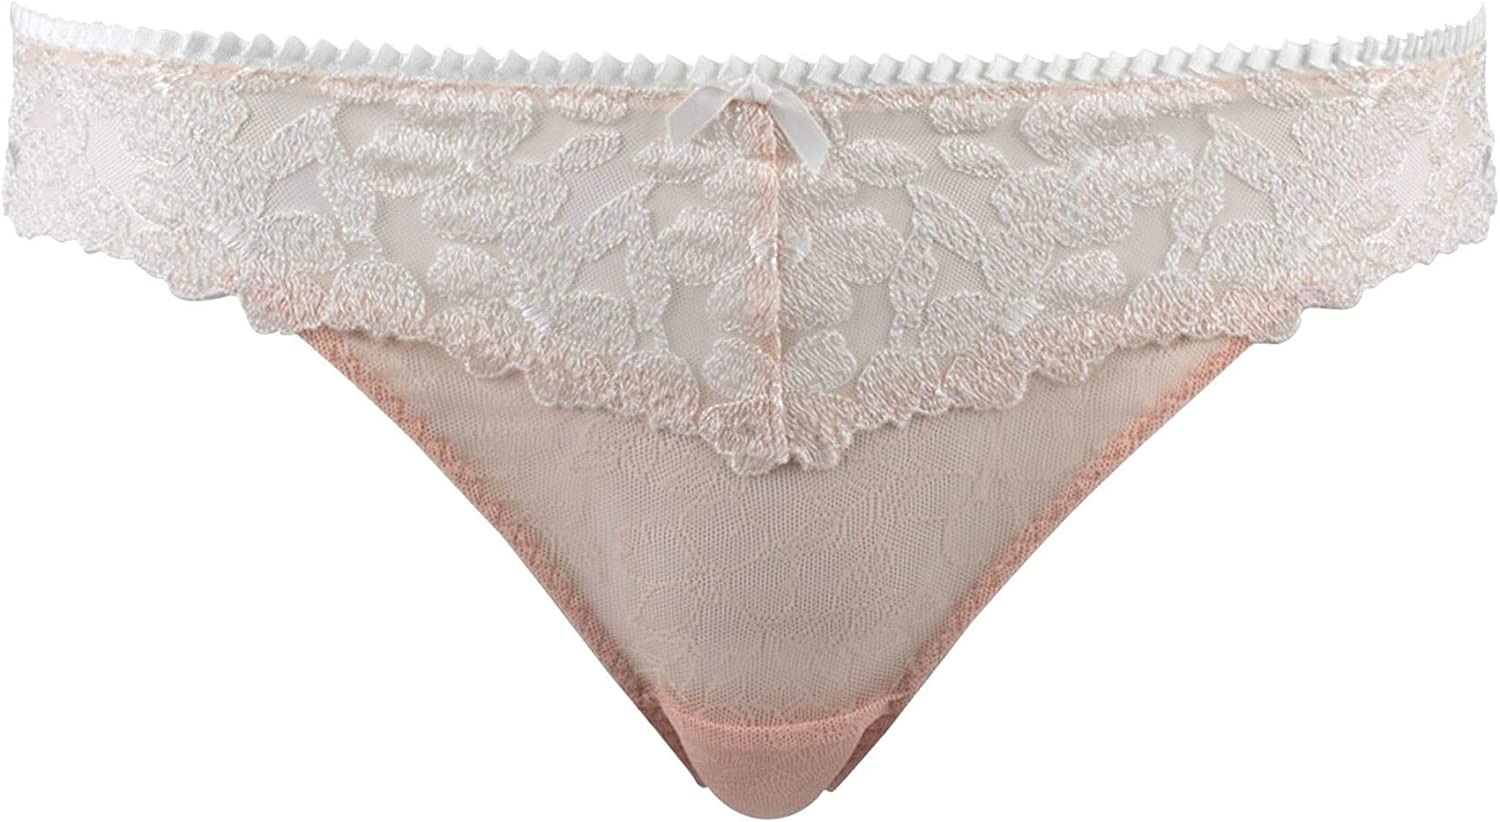 Aubade Sale MJ26 Women's Femme Charmeuse Ta Panty Embroidered Ranking TOP18 Knicker